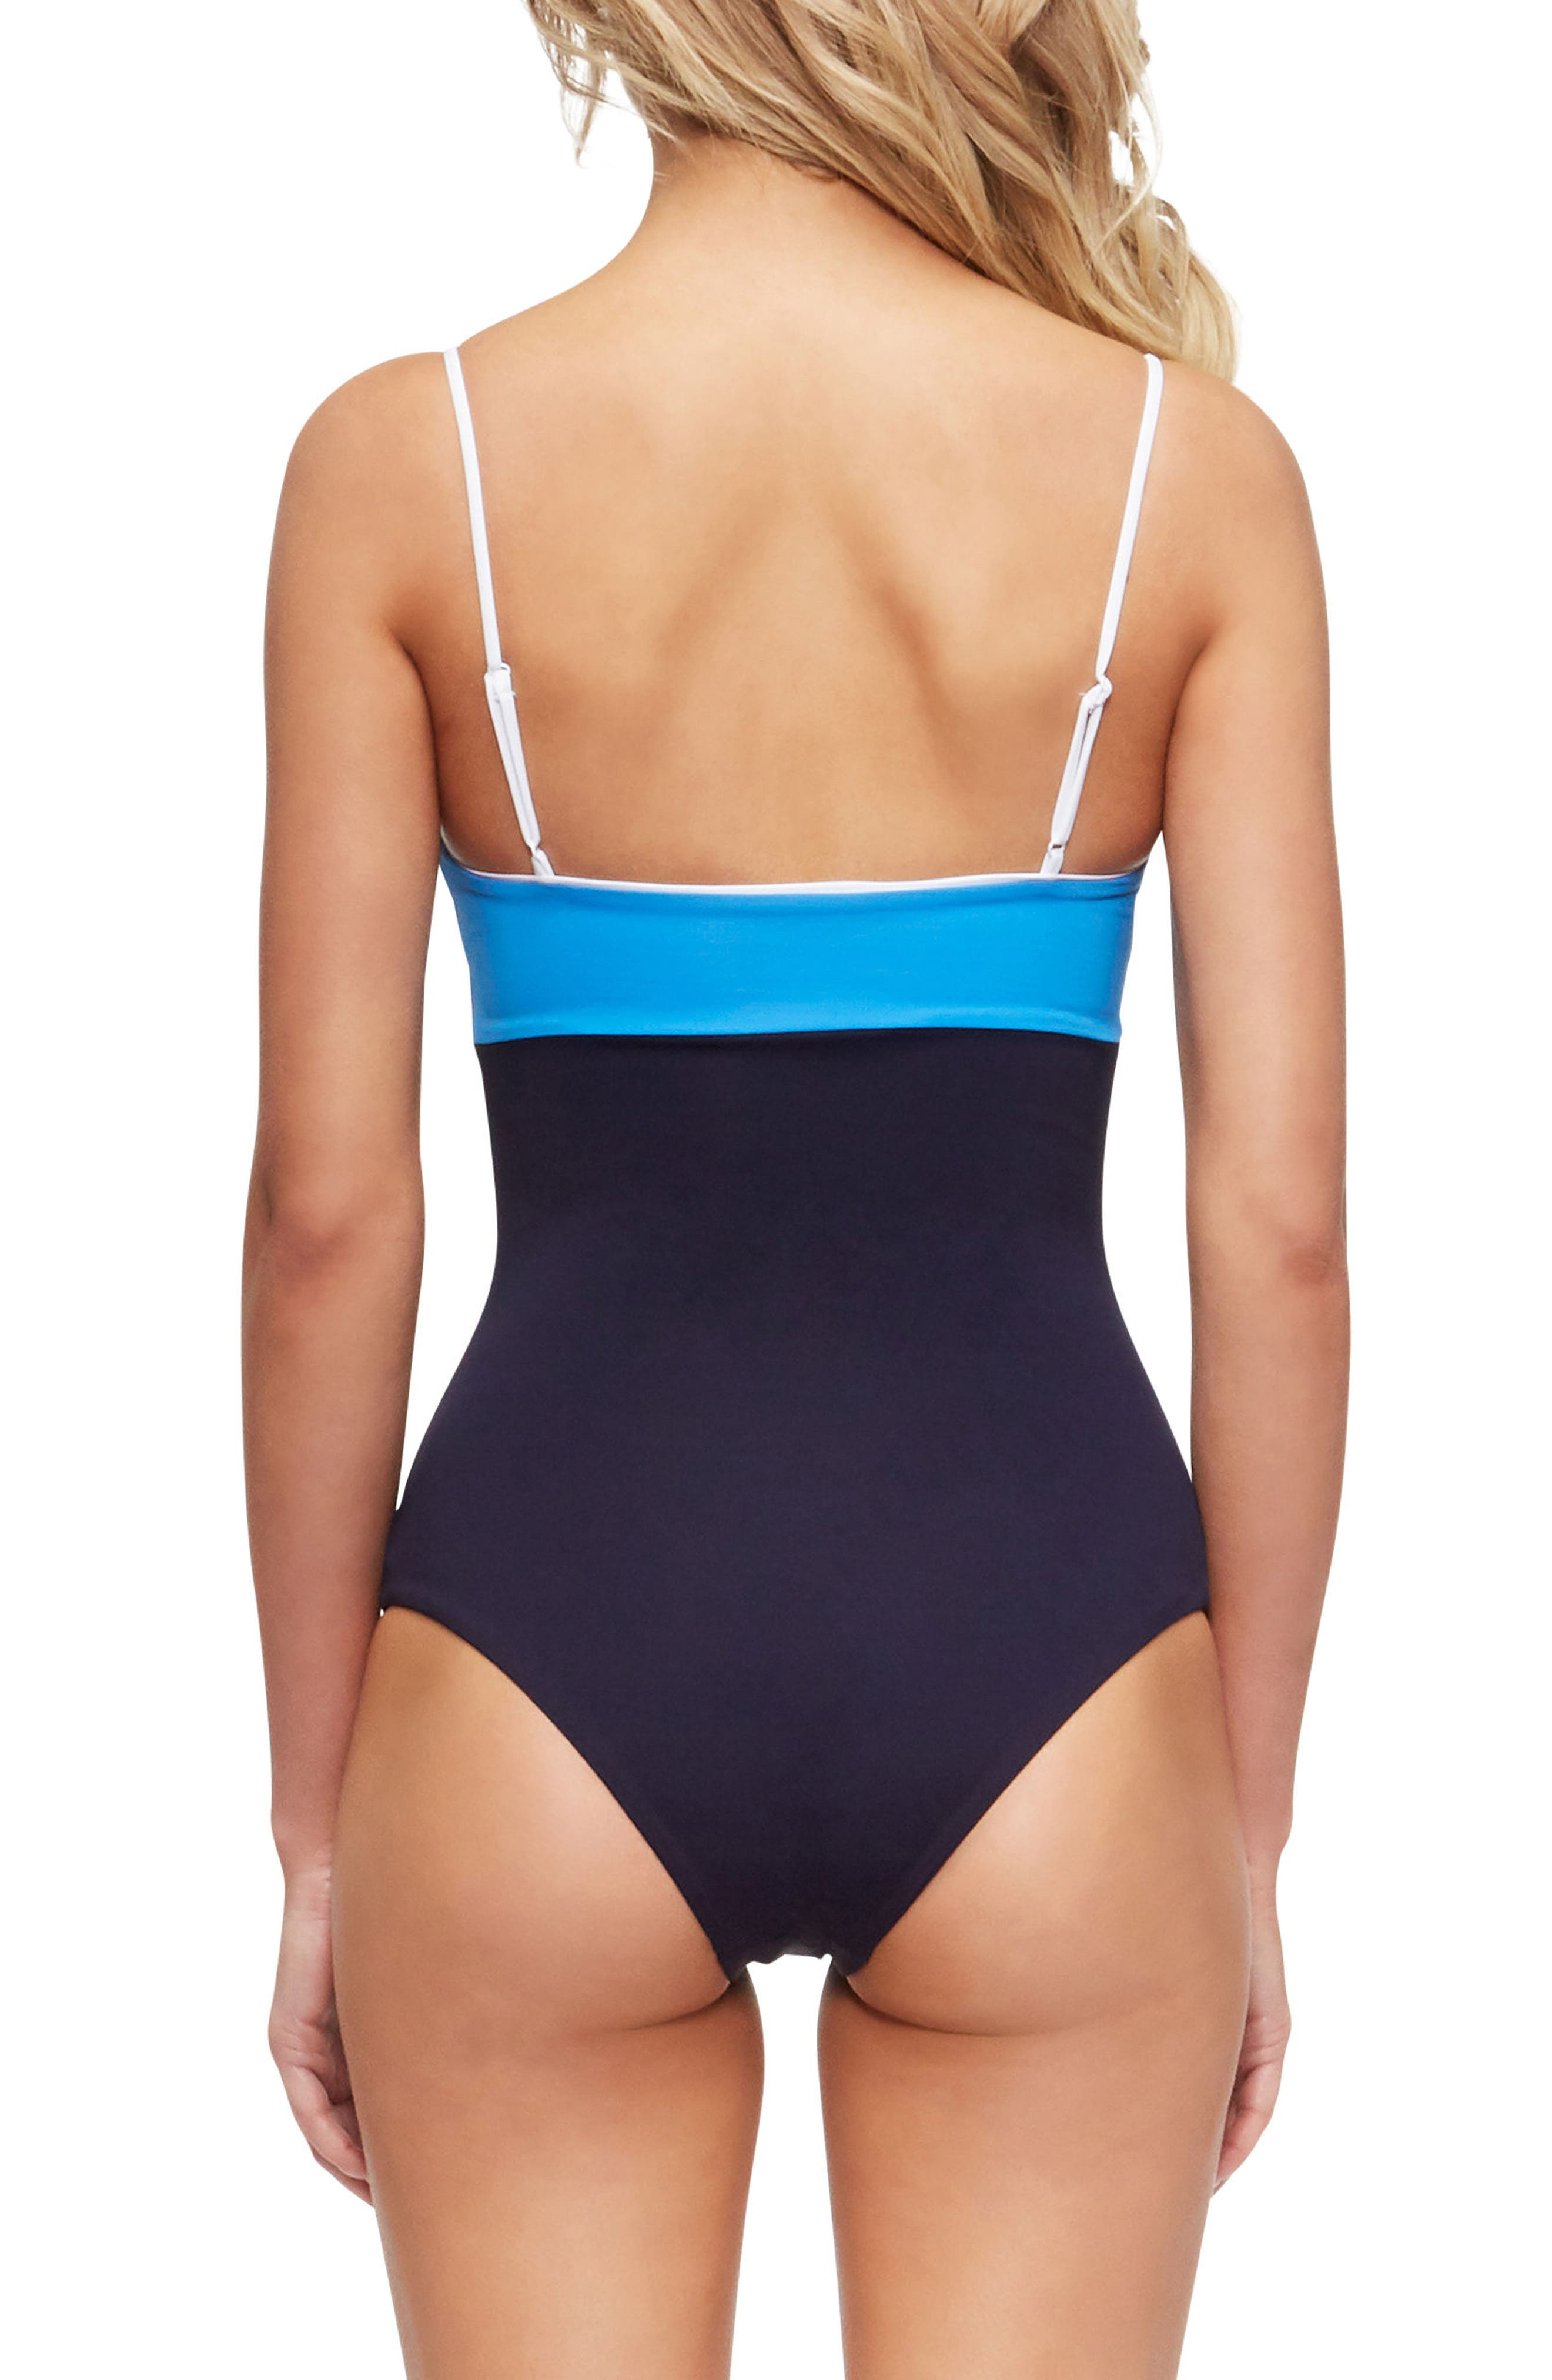 Scarlett One-Piece Swimsuit,                             Alternate thumbnail 2, color,                             Evening Blue/ French Blue